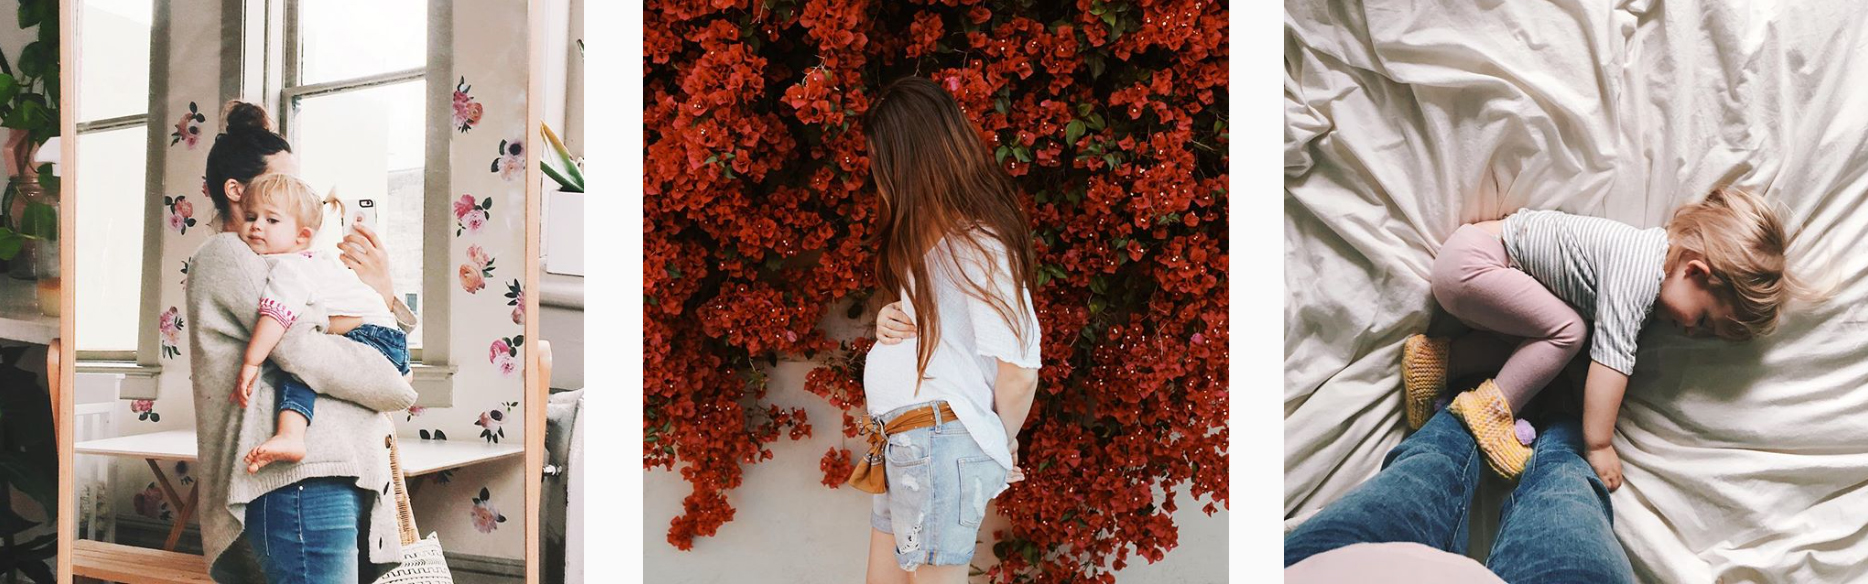 5 Cool Moms to Follow on Instagram - Planoly Blog - Mother's Day - Tegan Klenner